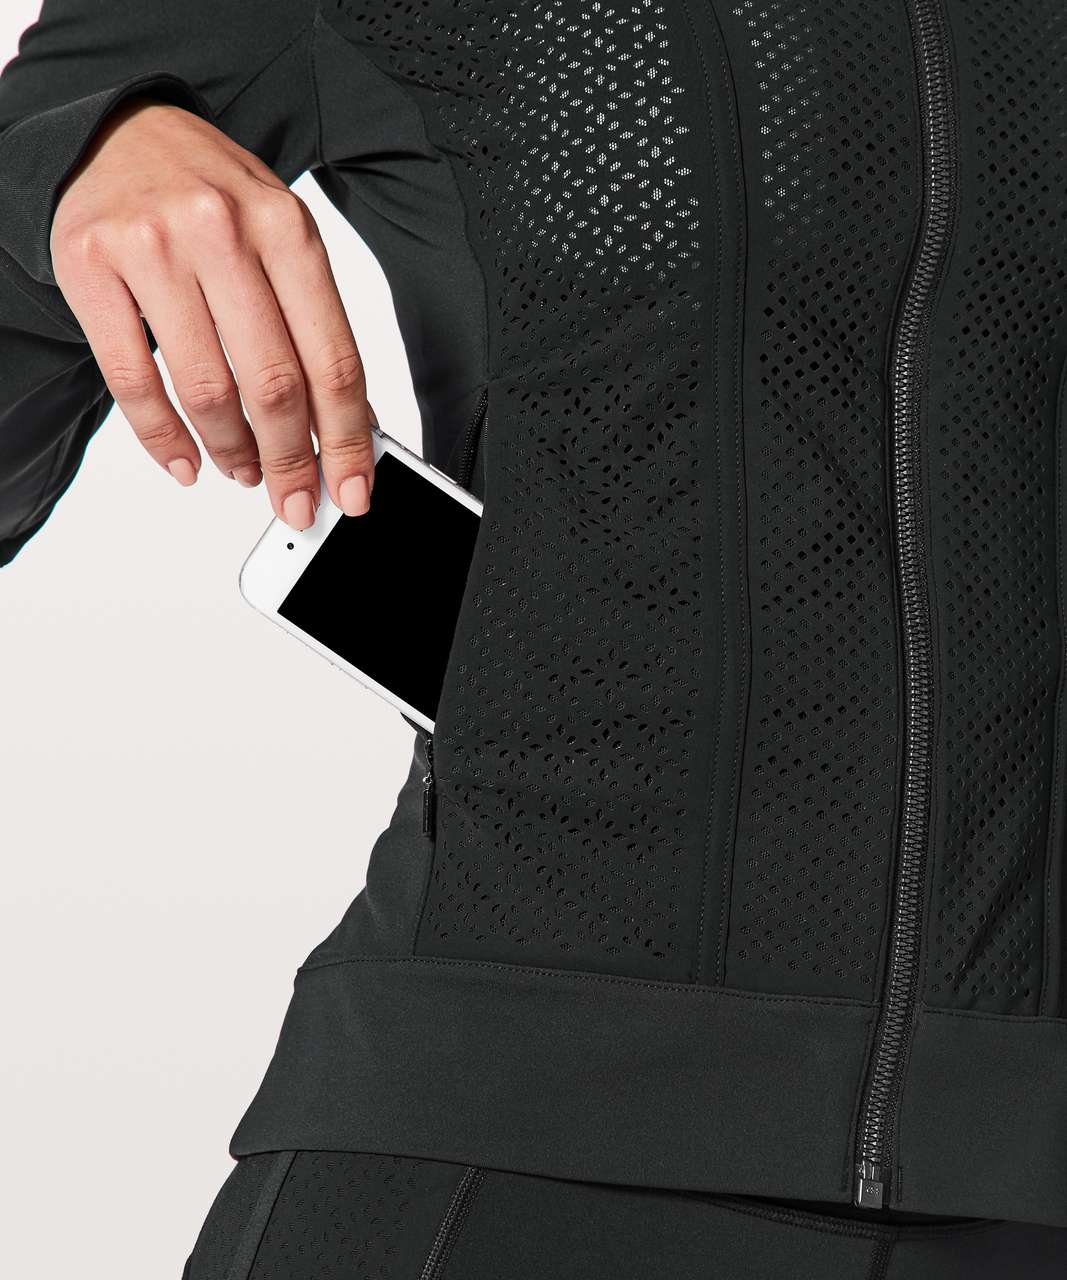 Lululemon Get Your Peek On Jacket - Black